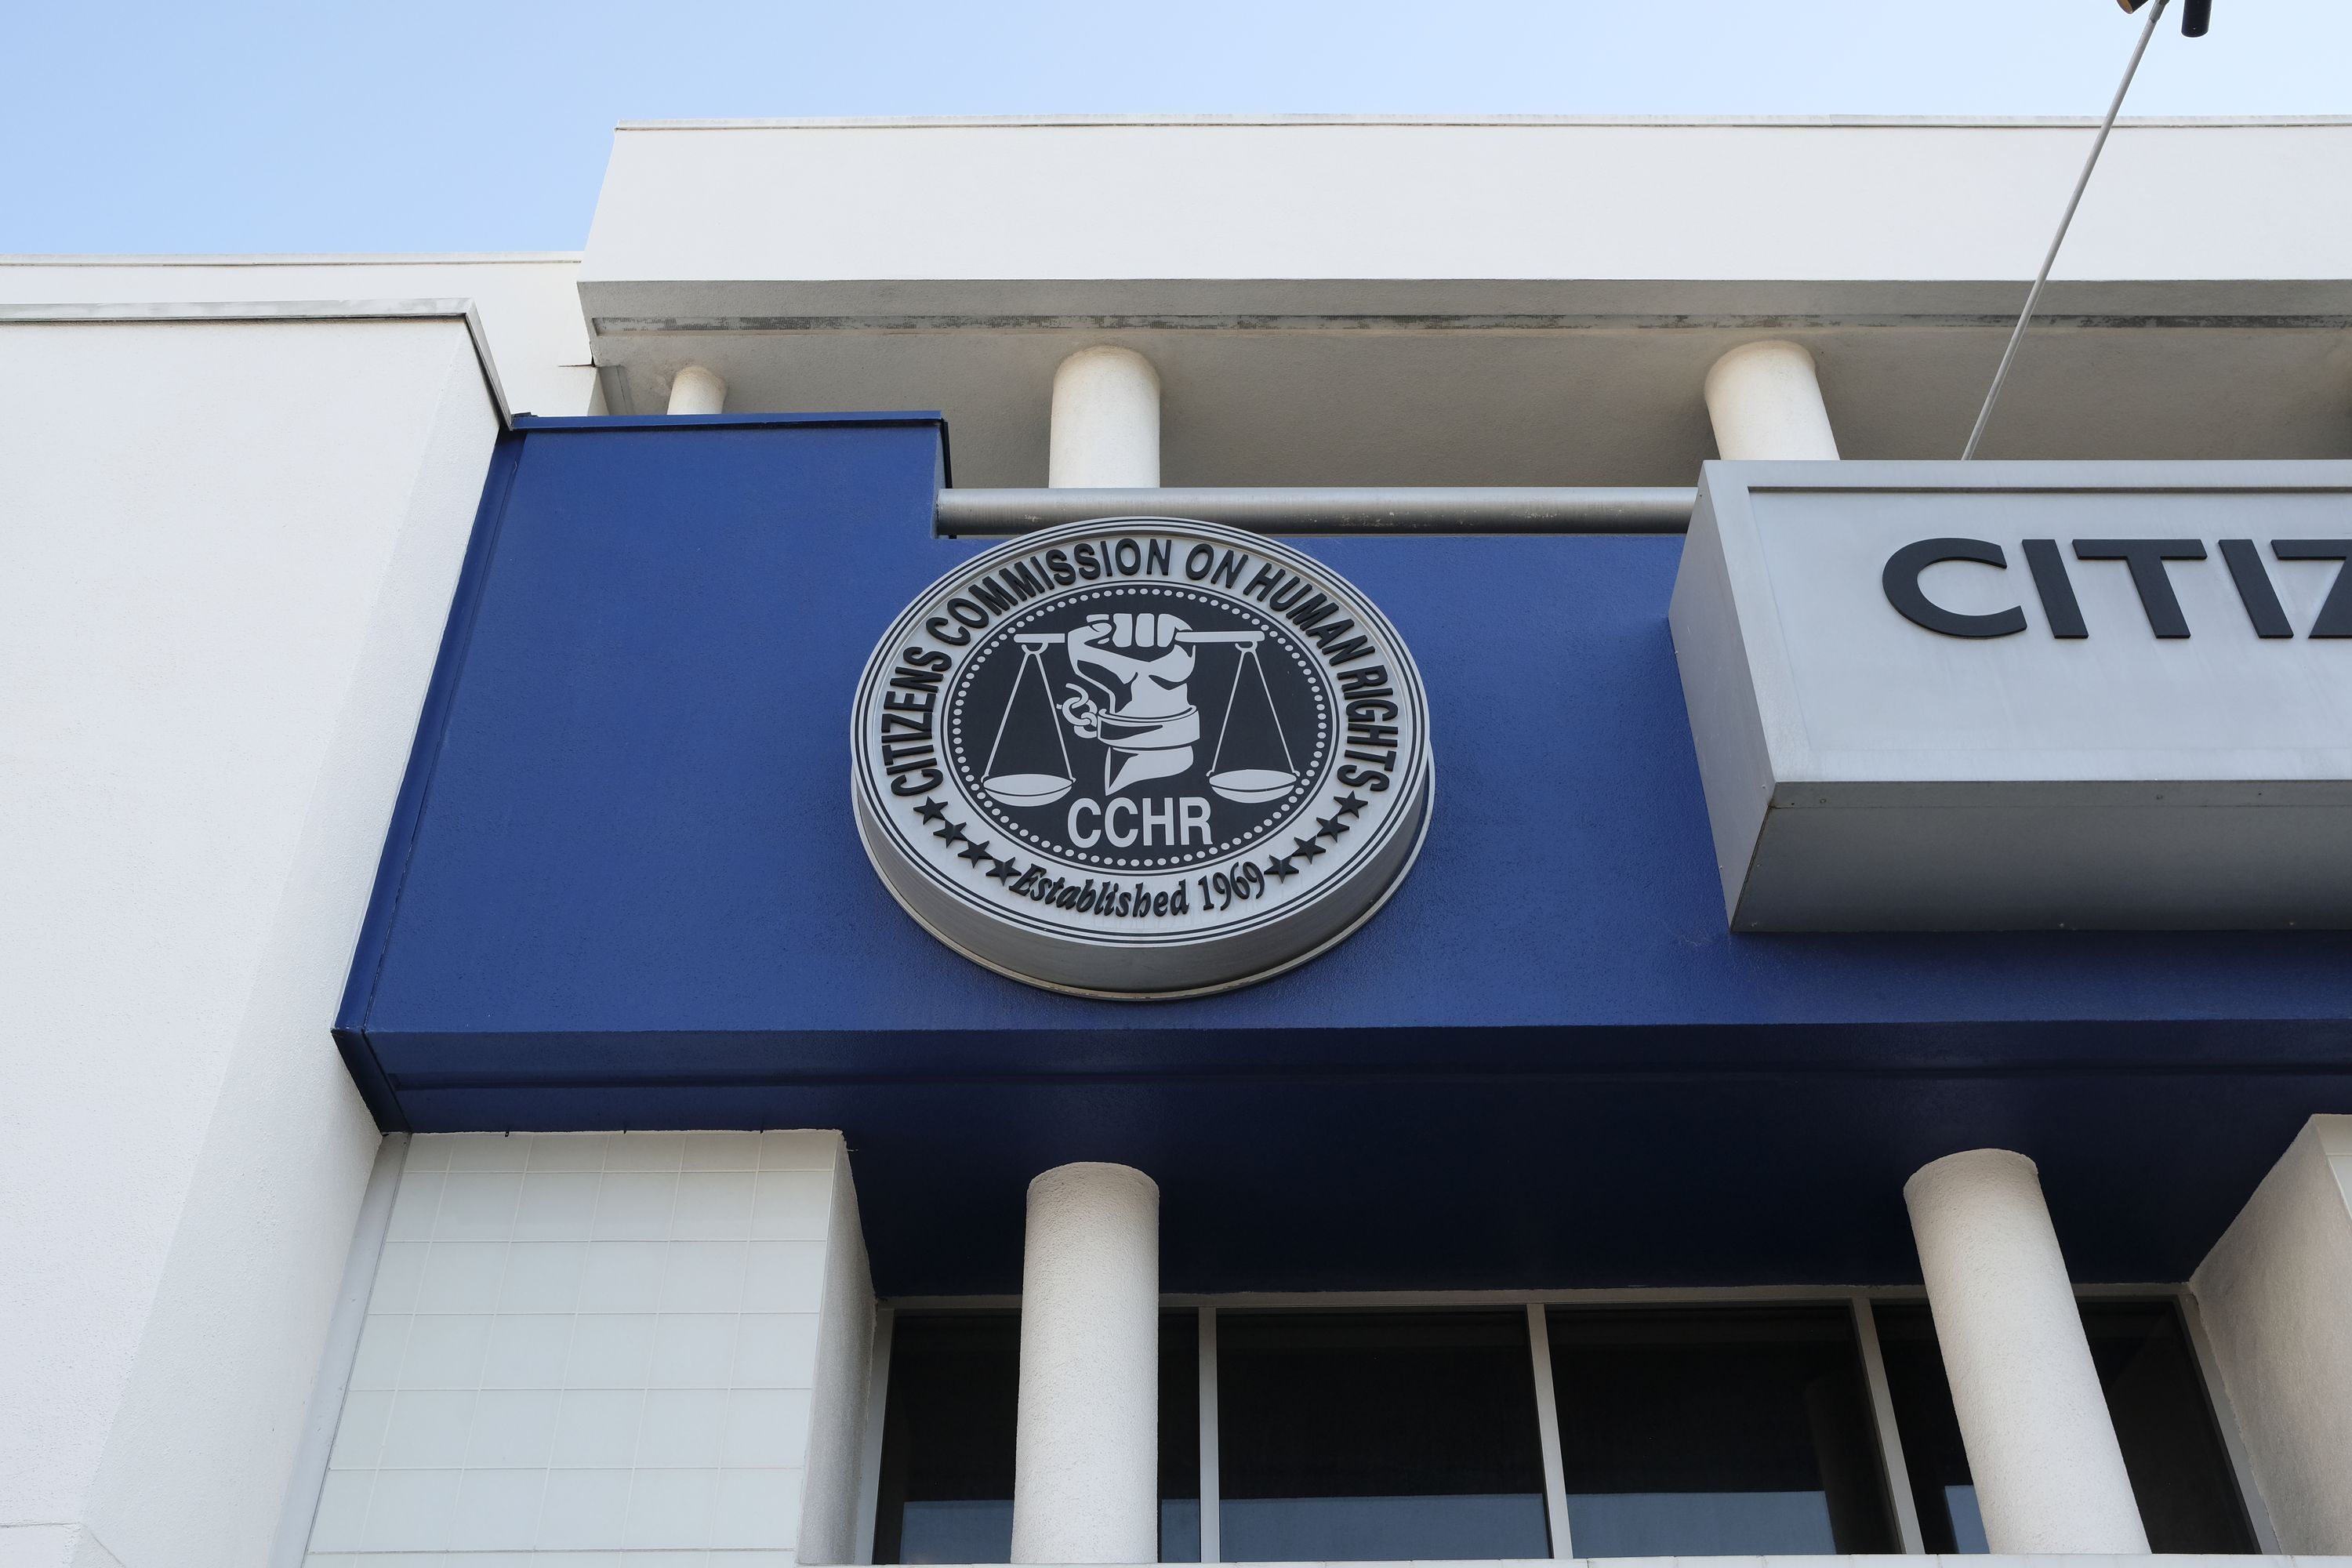 The Citizens Commission on Human Rights logo on the museum.